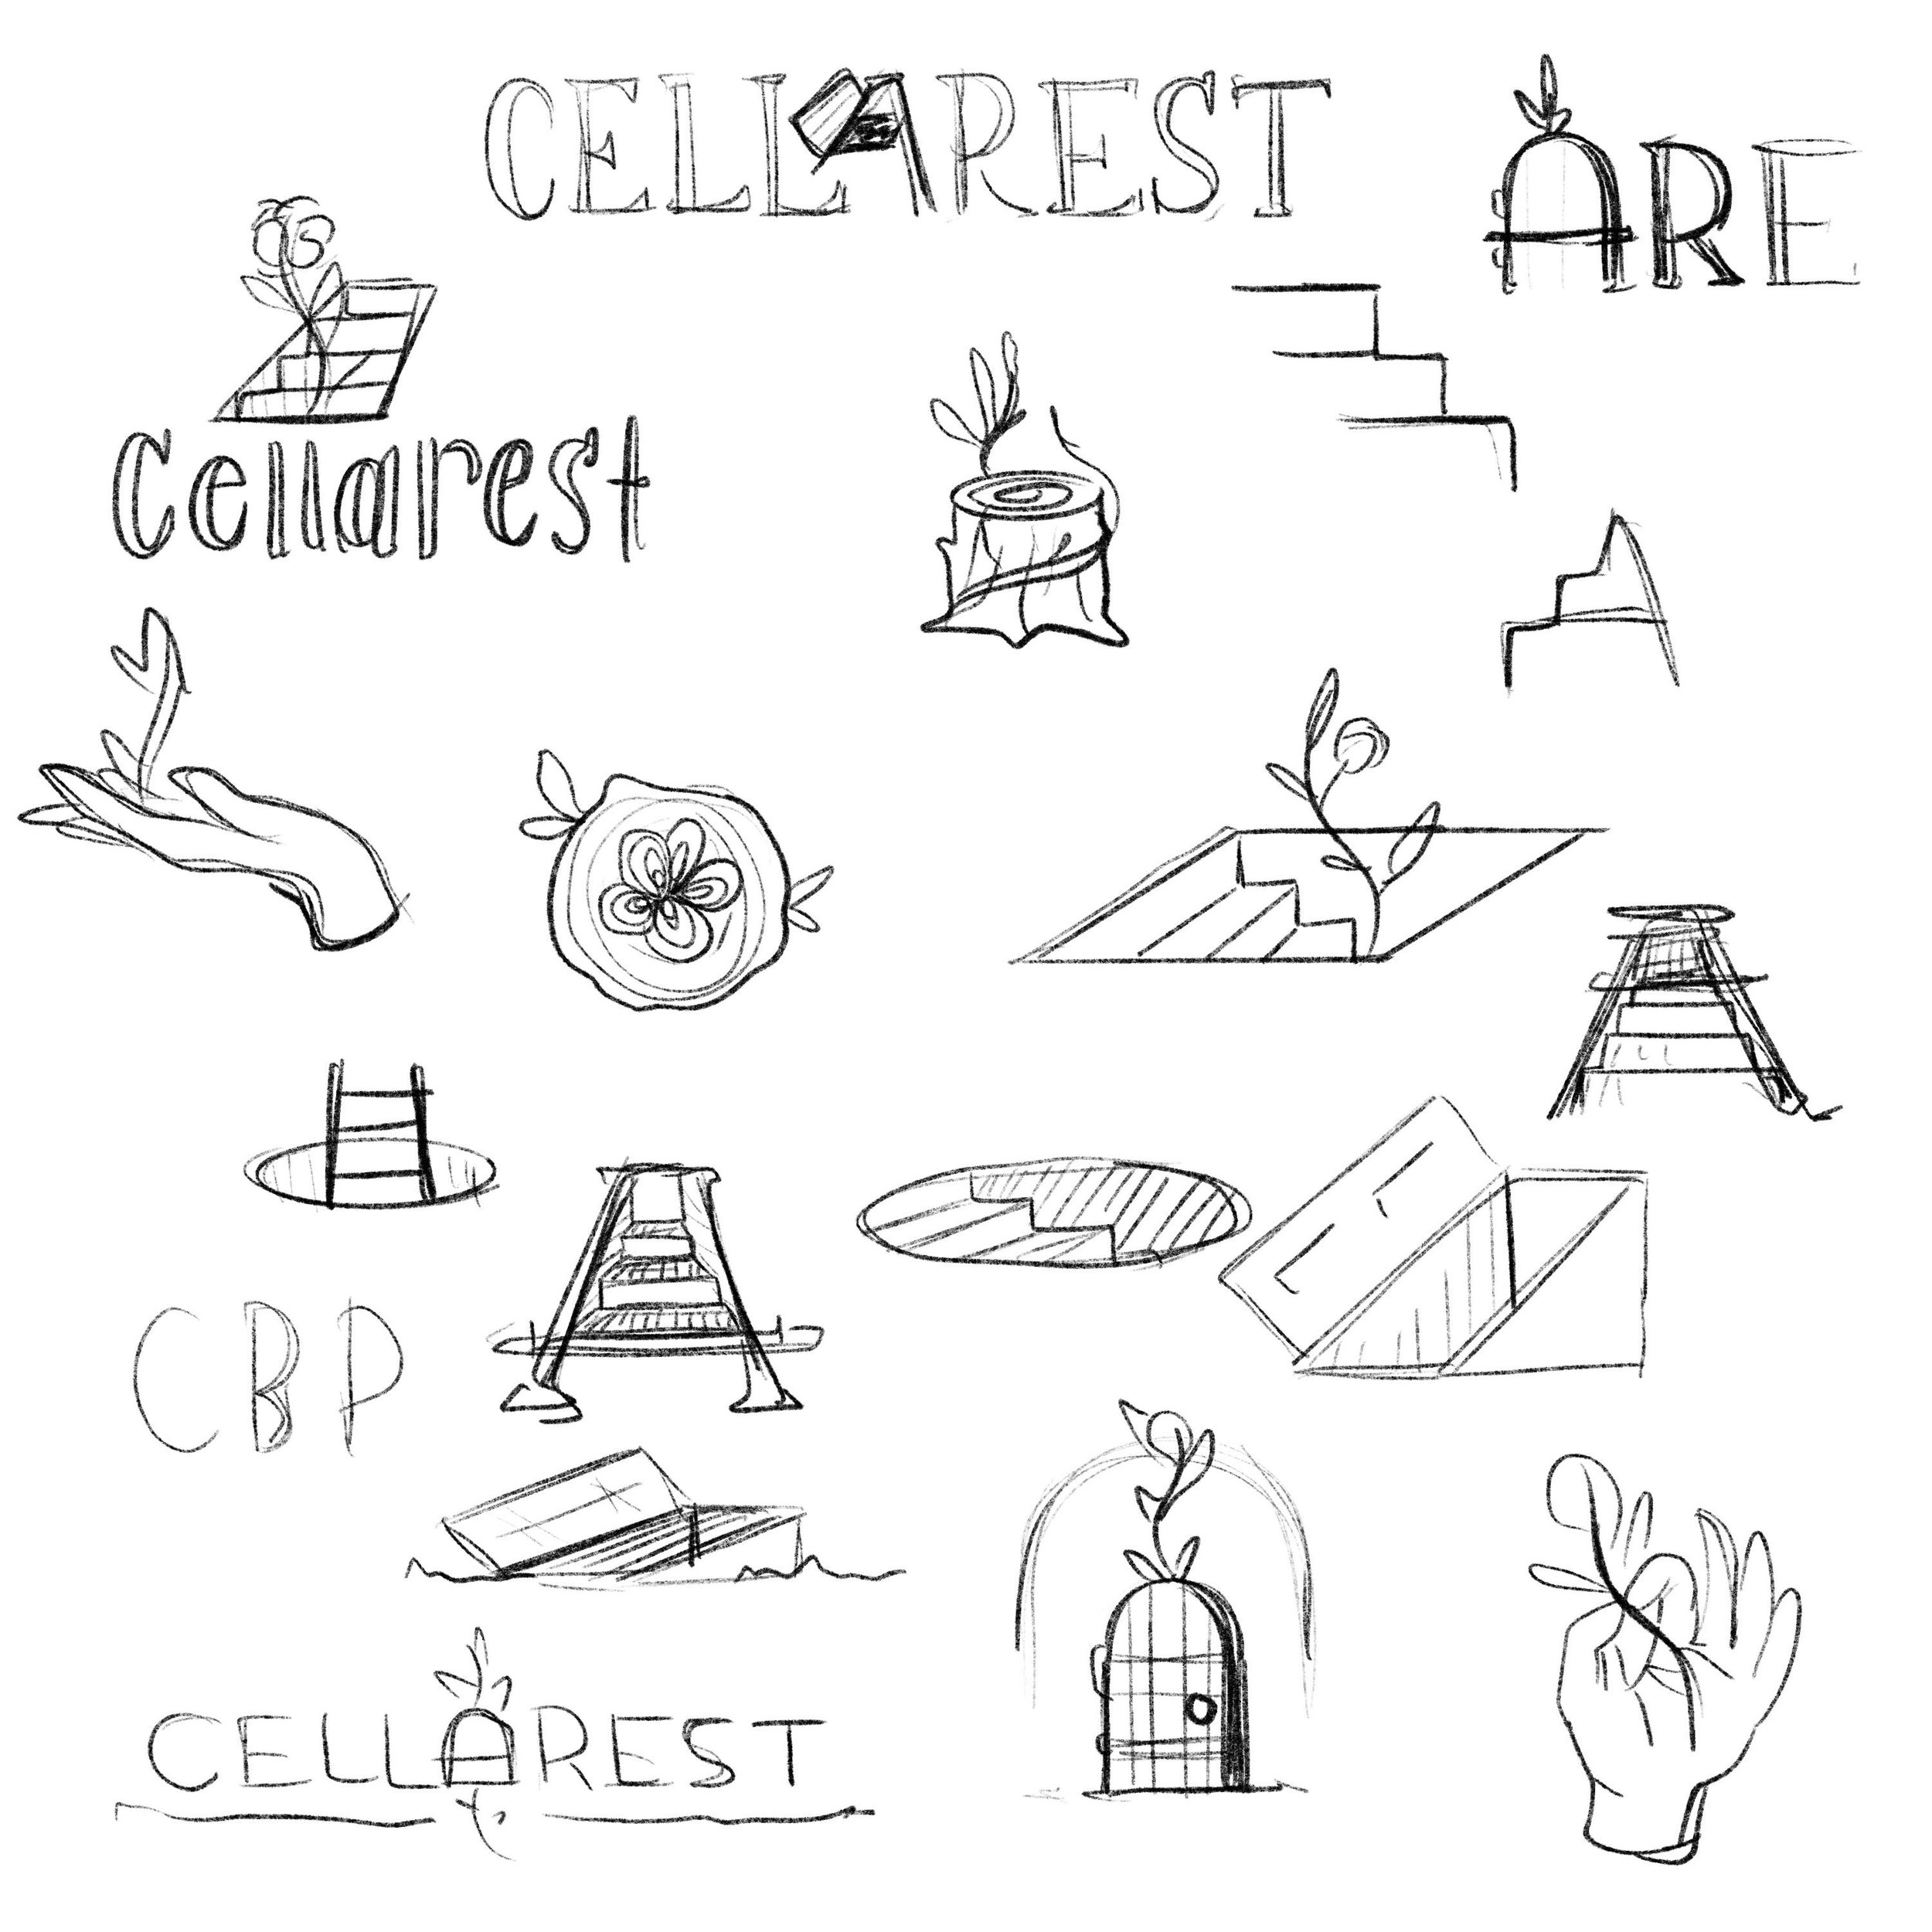 Cellarest Beer Project Sketches and Concepts